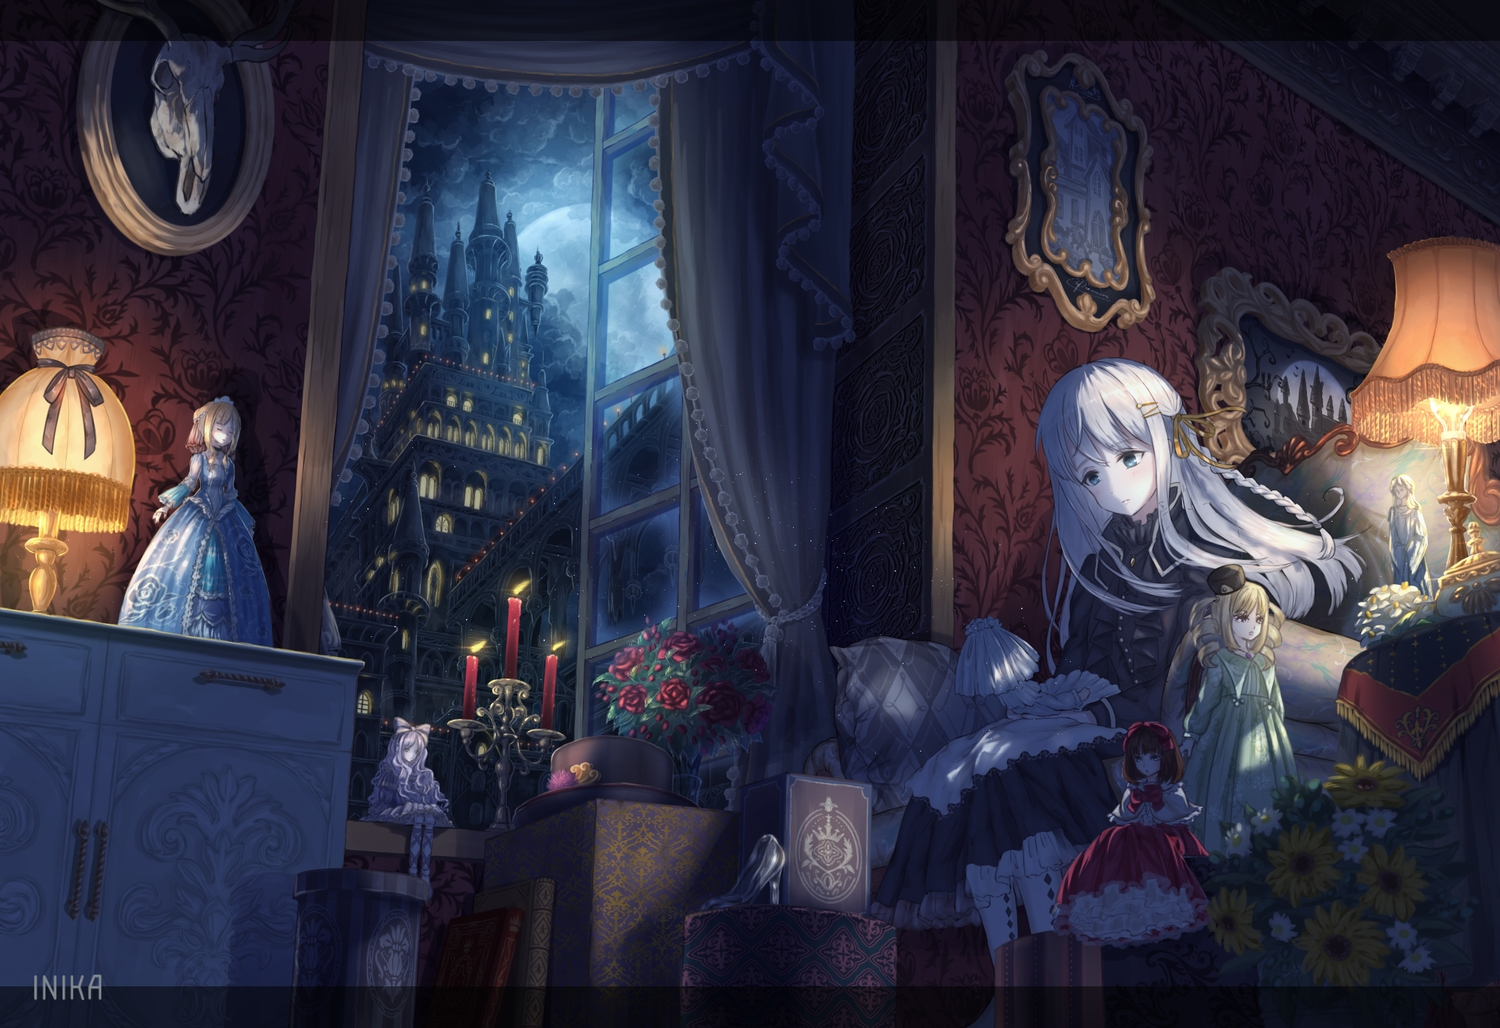 blue_eyes braids building clouds dark doll dress flowers goth-loli inika landscape lolita_fashion long_hair moon night original scenic sky watermark white_hair